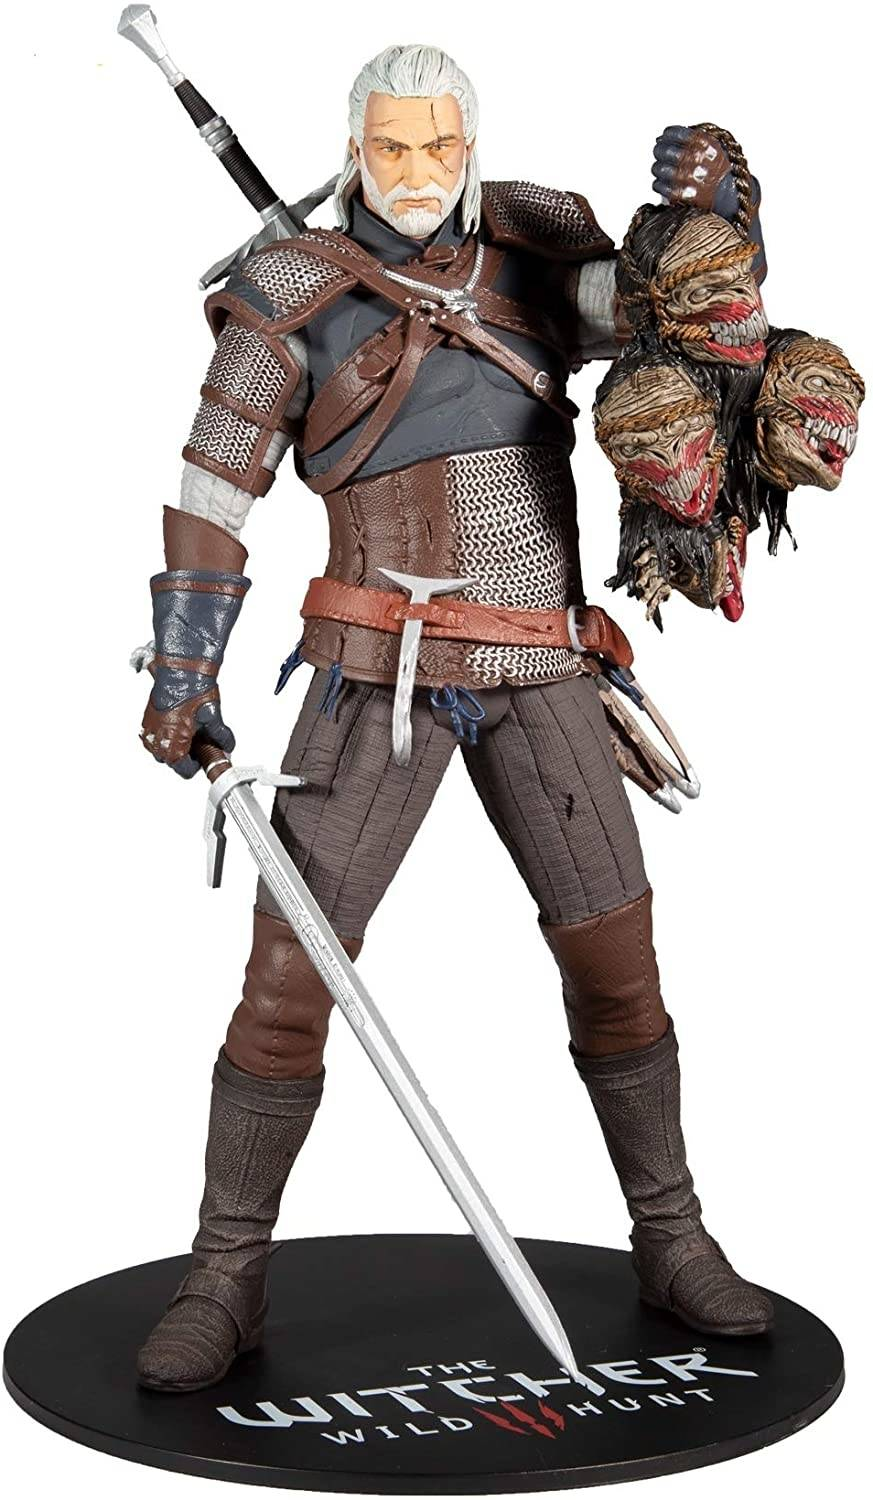 Witcher Geralt Of Rivia 12 Inch Scale PVC Action Figure with classic armor, sword and trophies